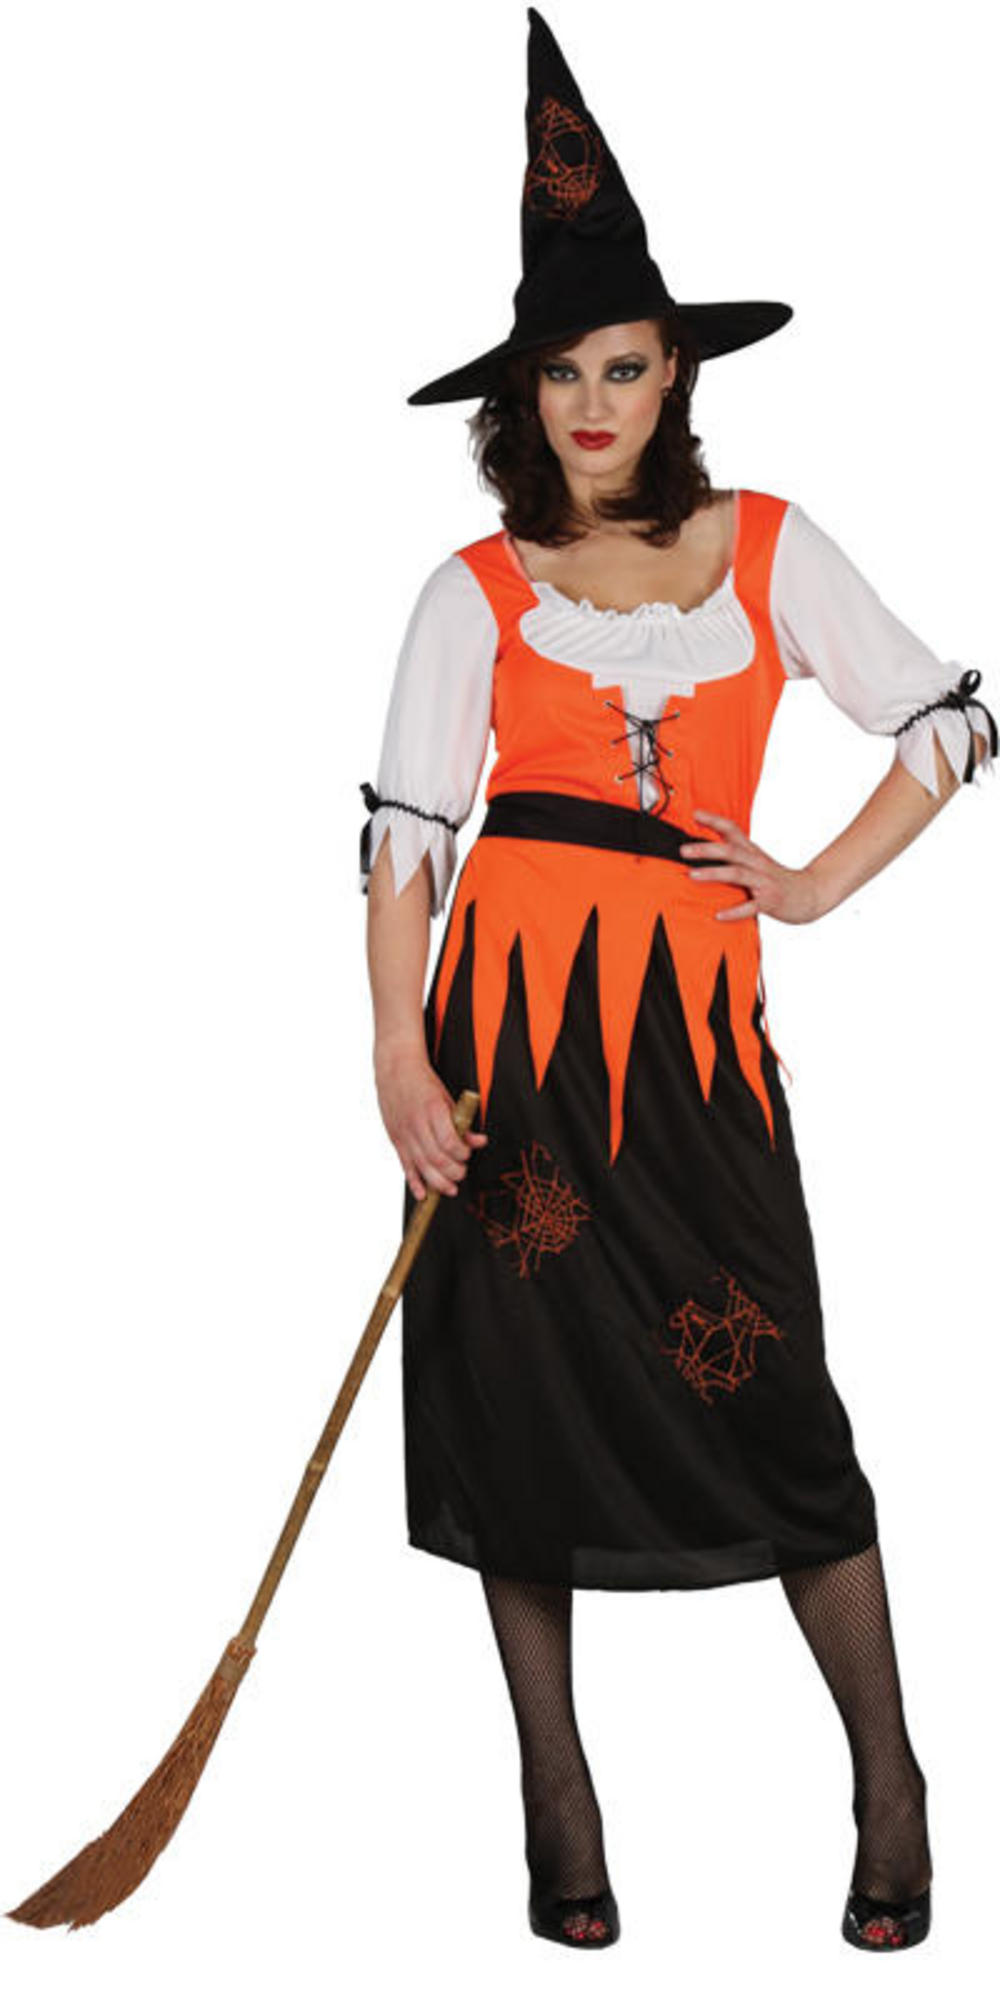 Witchy Witch Halloween Costume  sc 1 st  Mega Fancy Dress & Witchy Witch Halloween Costume | All Ladies Costumes | Mega Fancy Dress